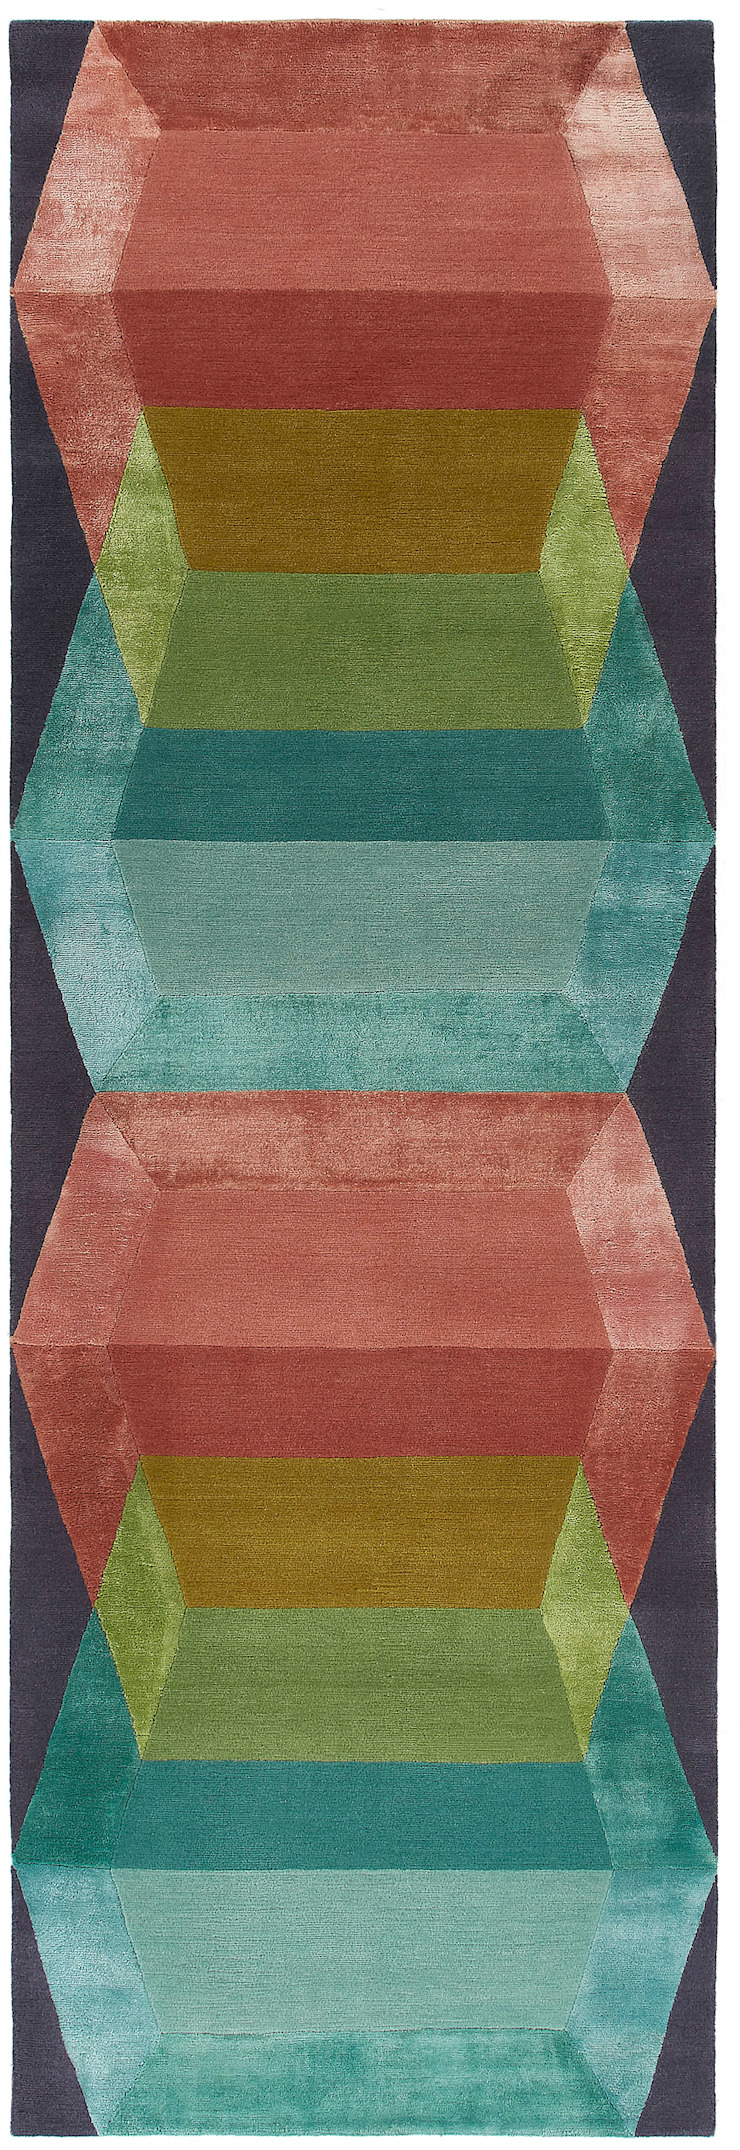 Deirdre Dyson GLASS CUBES hand knotted wool and silk runner Deirdre Dyson Carpets Ltd Walls & flooringCarpets & rugs Wool Multicolored